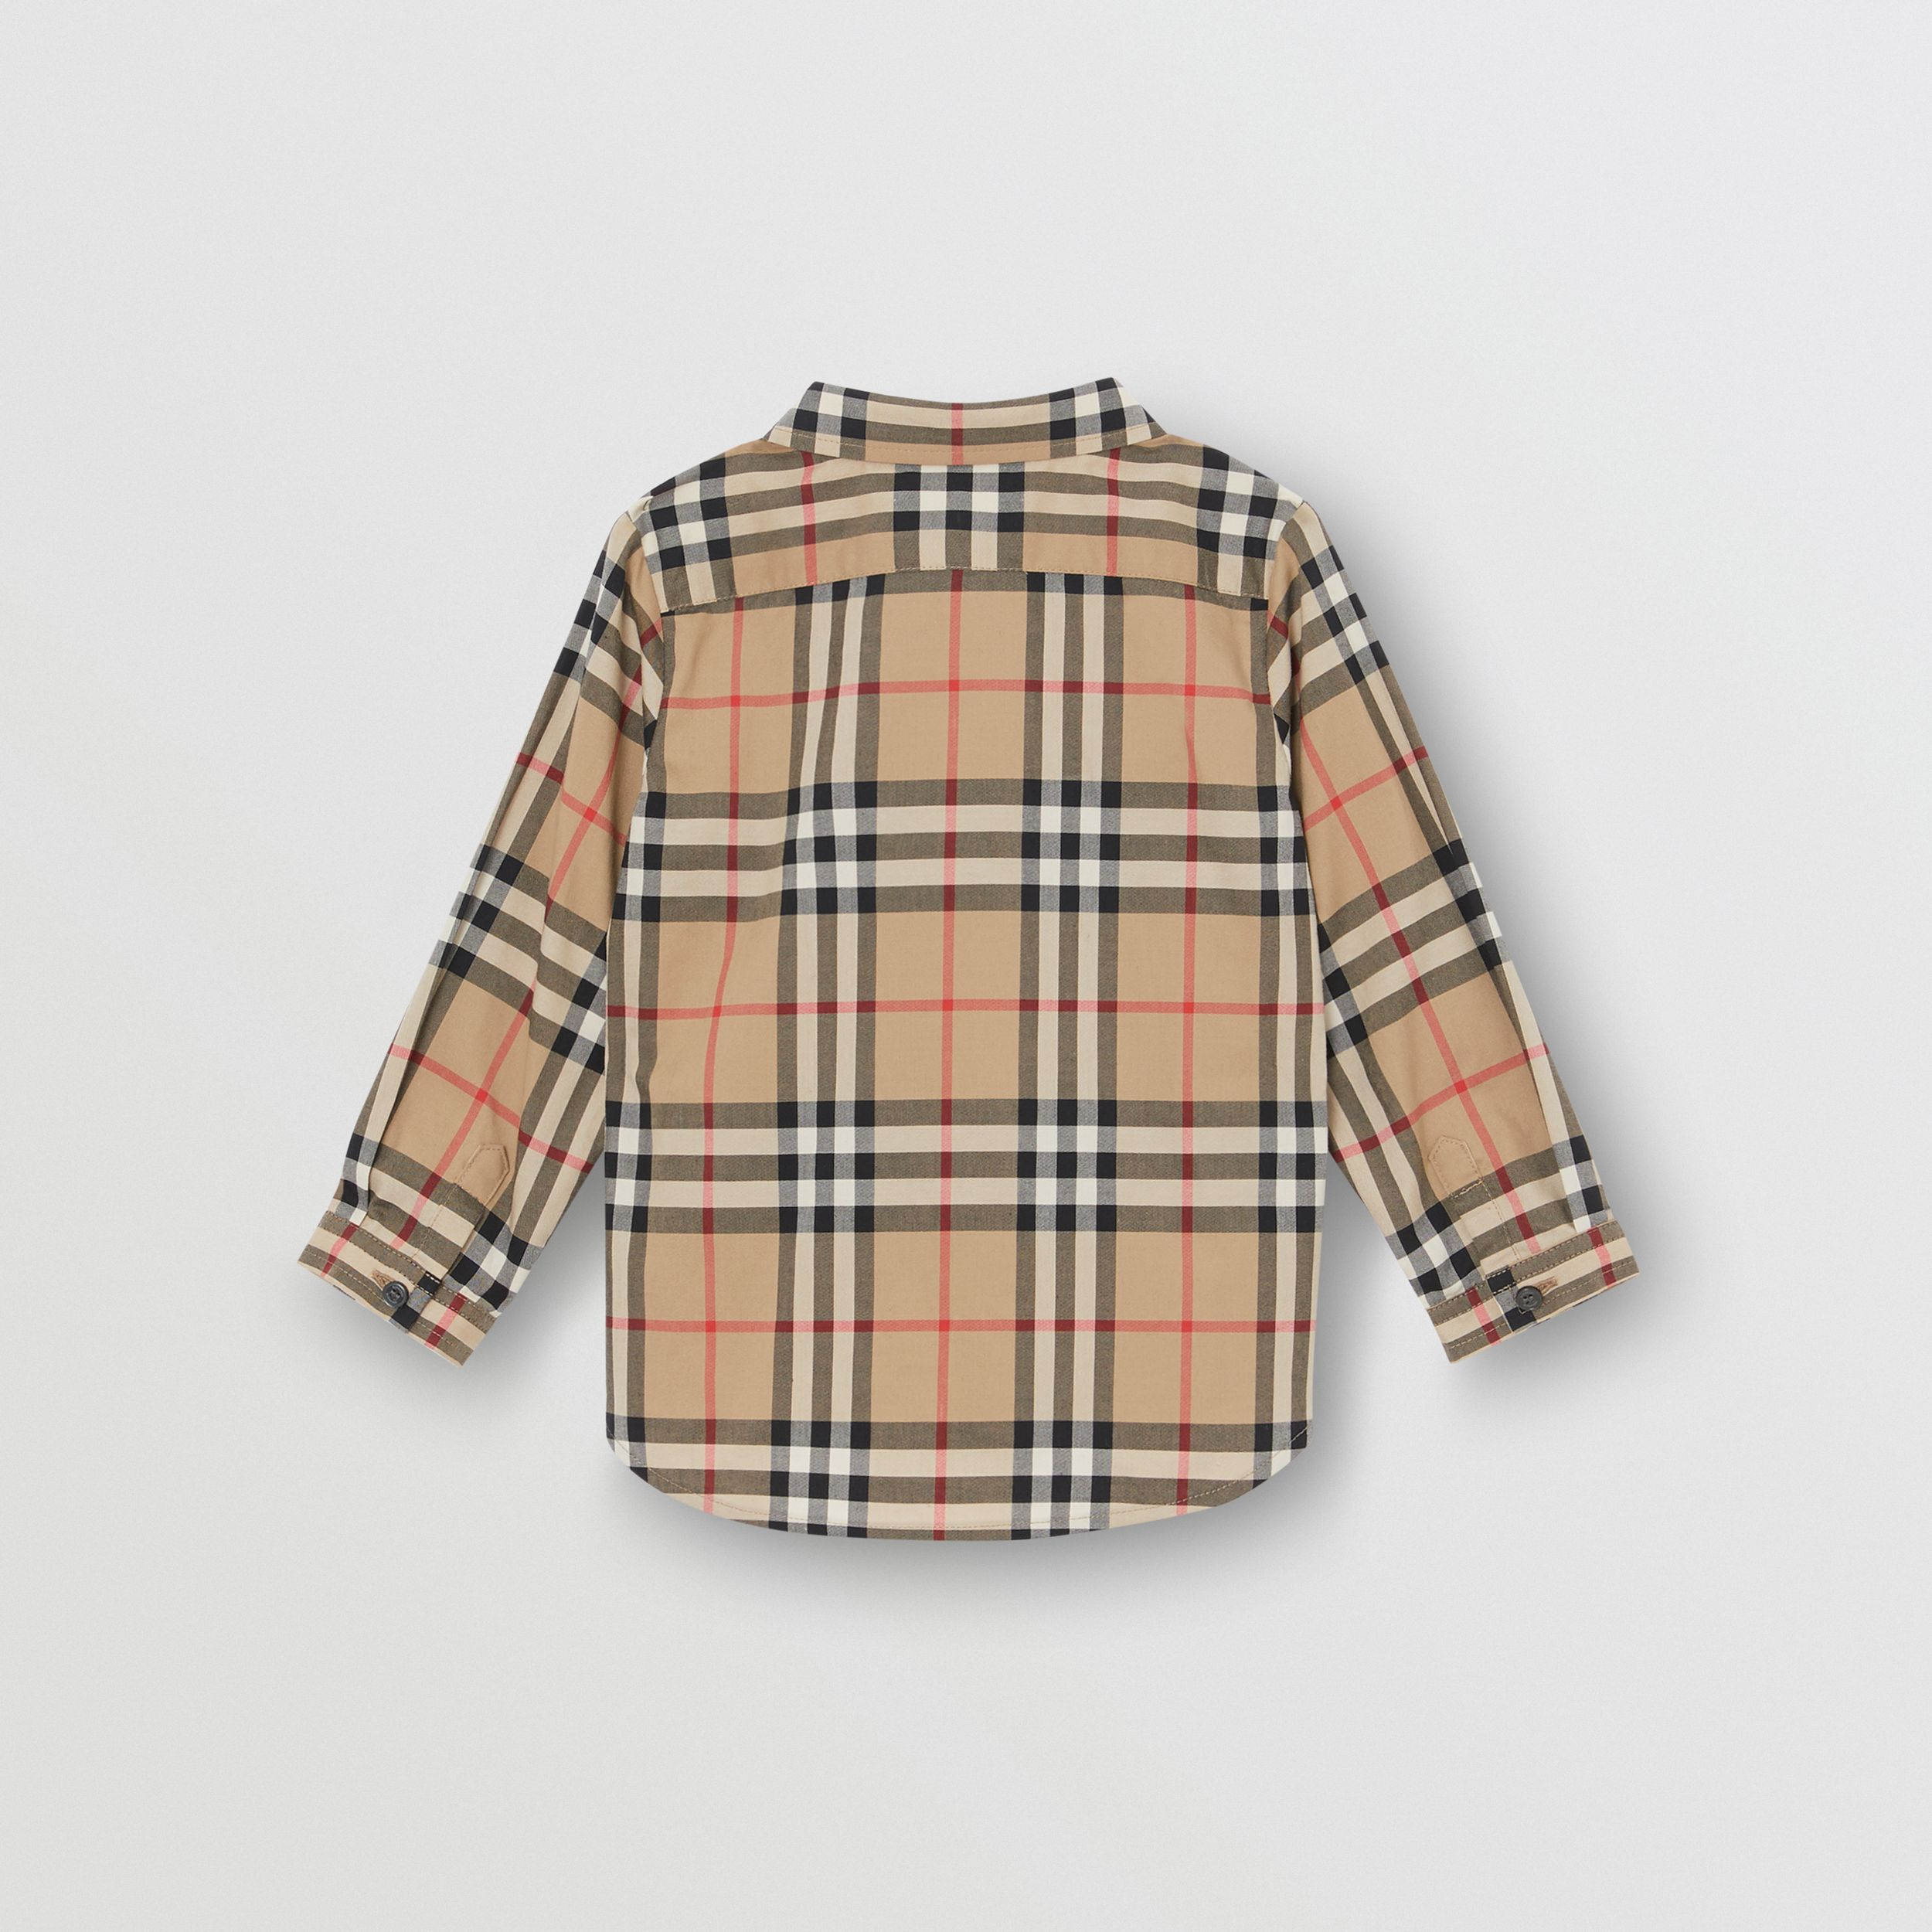 Vintage Check Cotton Shirt in Archive Beige - Children | Burberry - 4